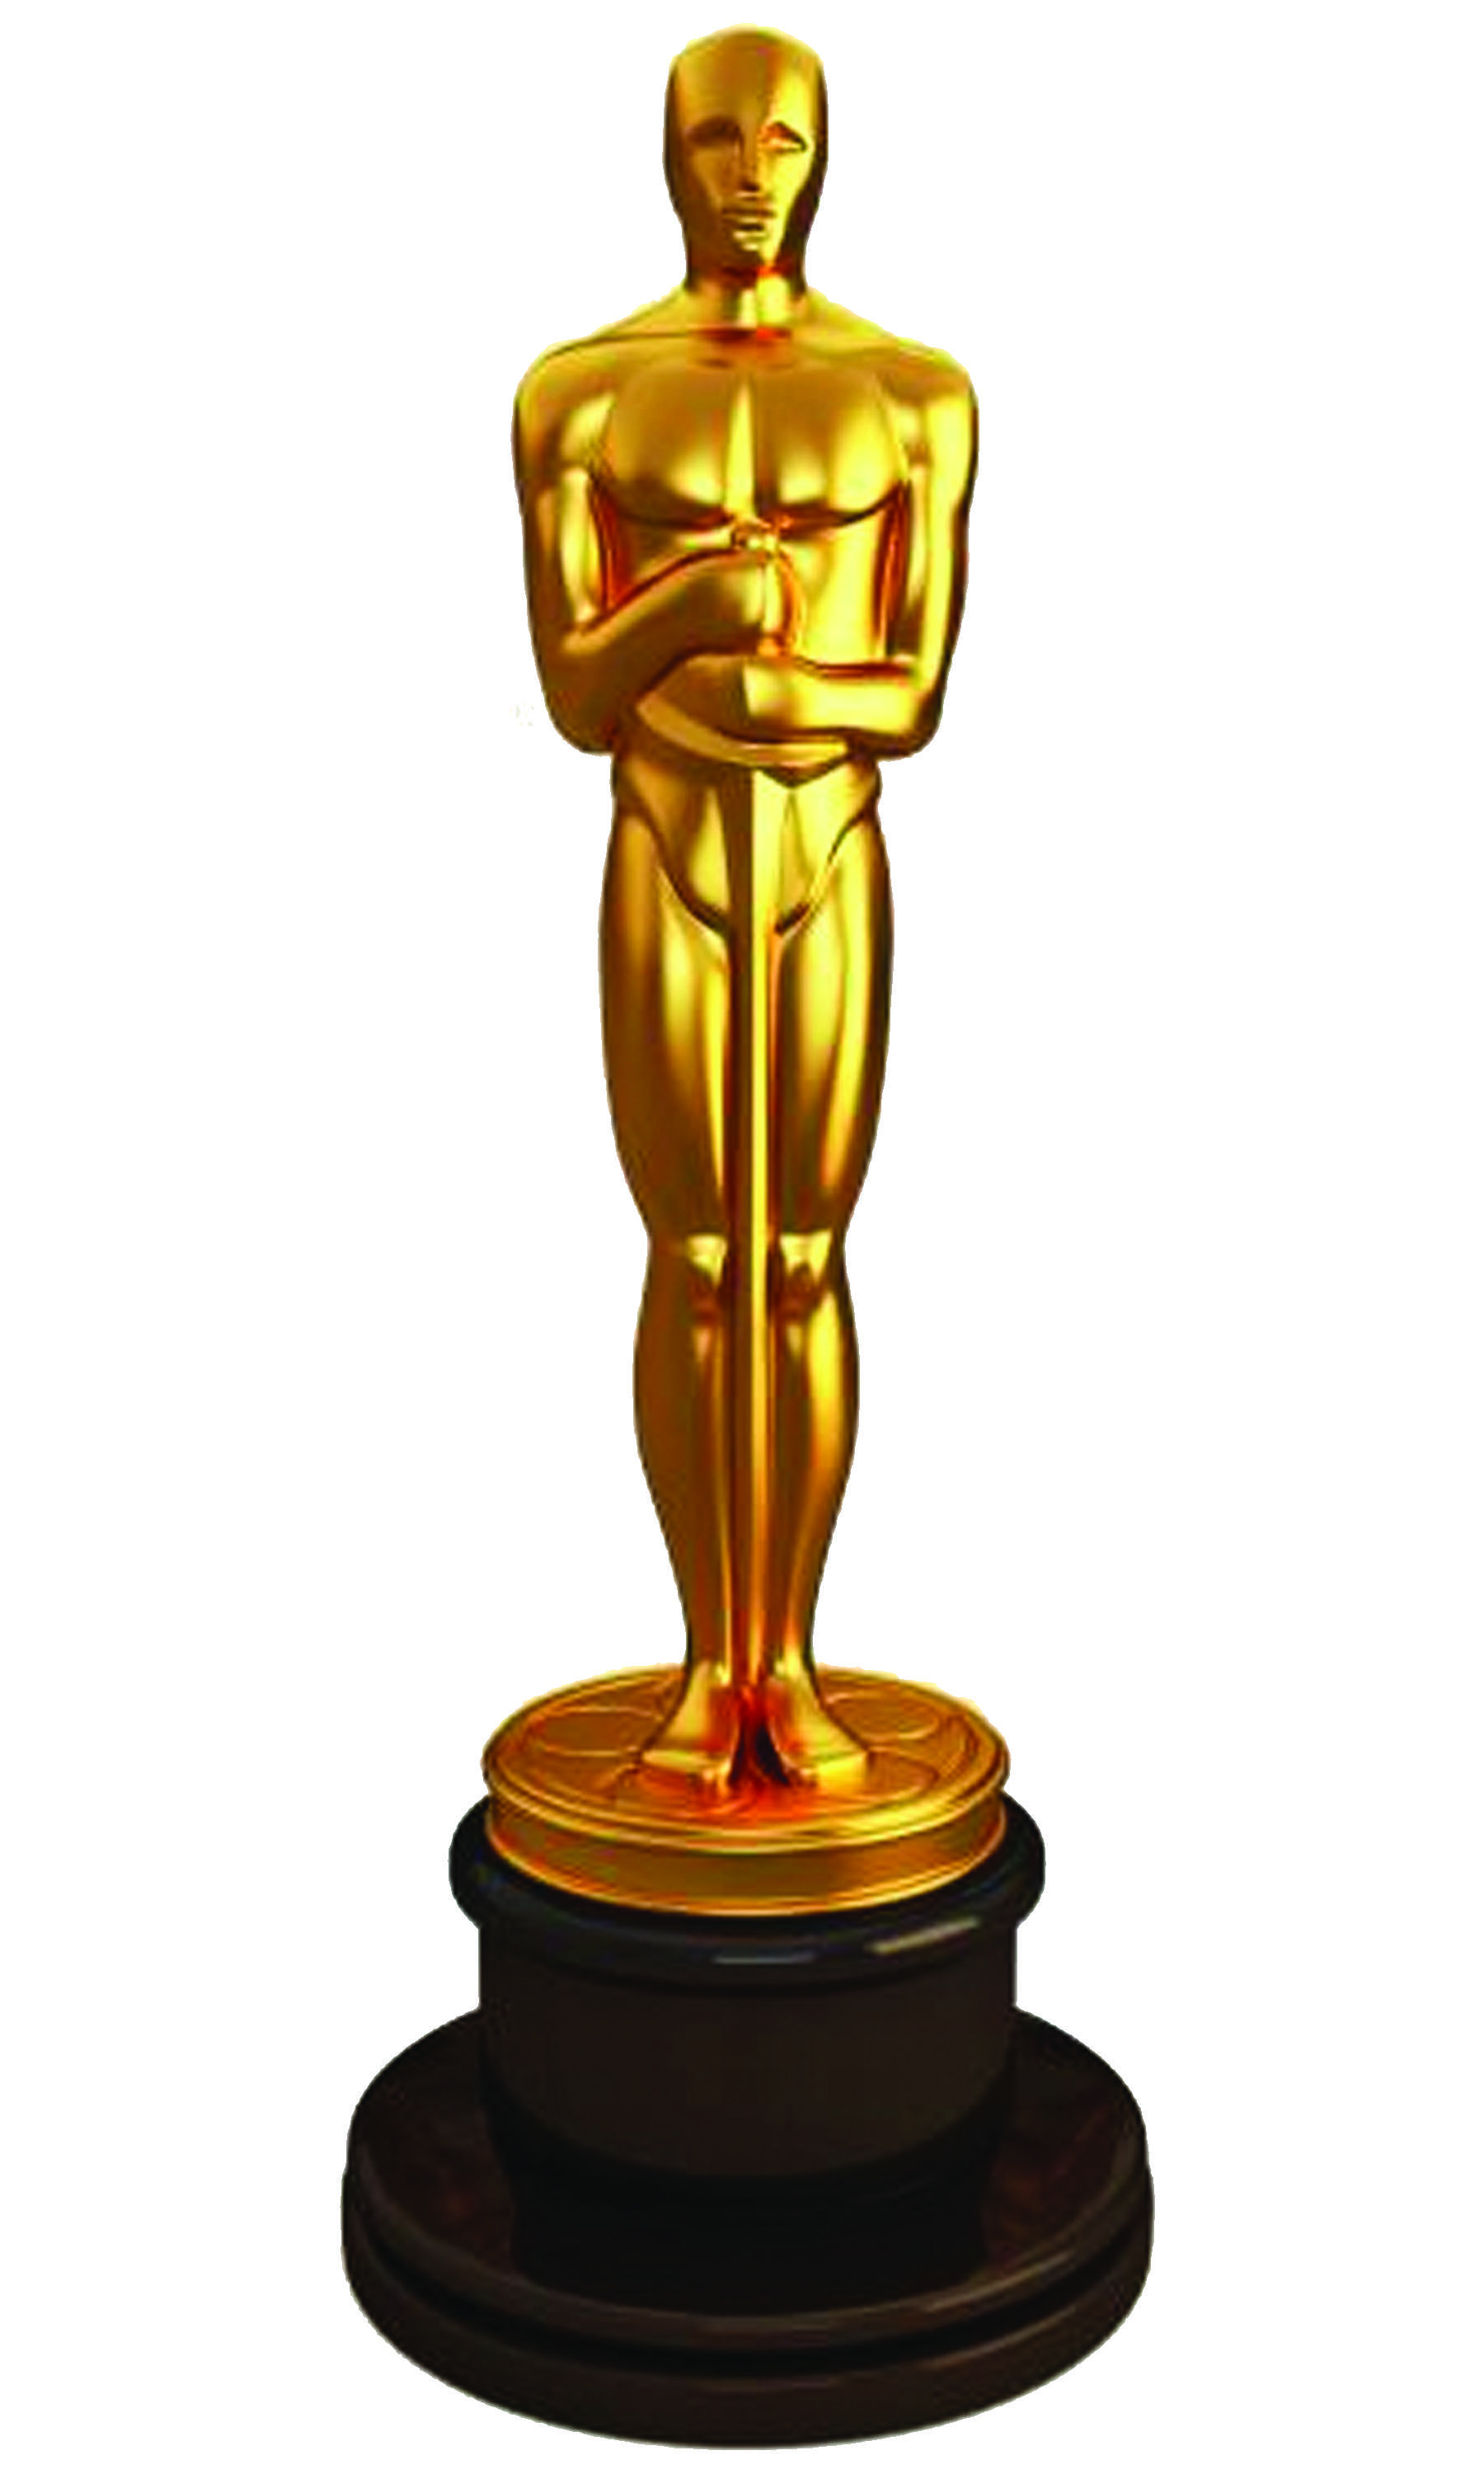 Oscars Logo Vector likewise 6946669881 moreover Academy Award Statue For Sale also Les Oscars Version Nba likewise Academy Award Winning Animated Shorts. on oscar statuette clip art